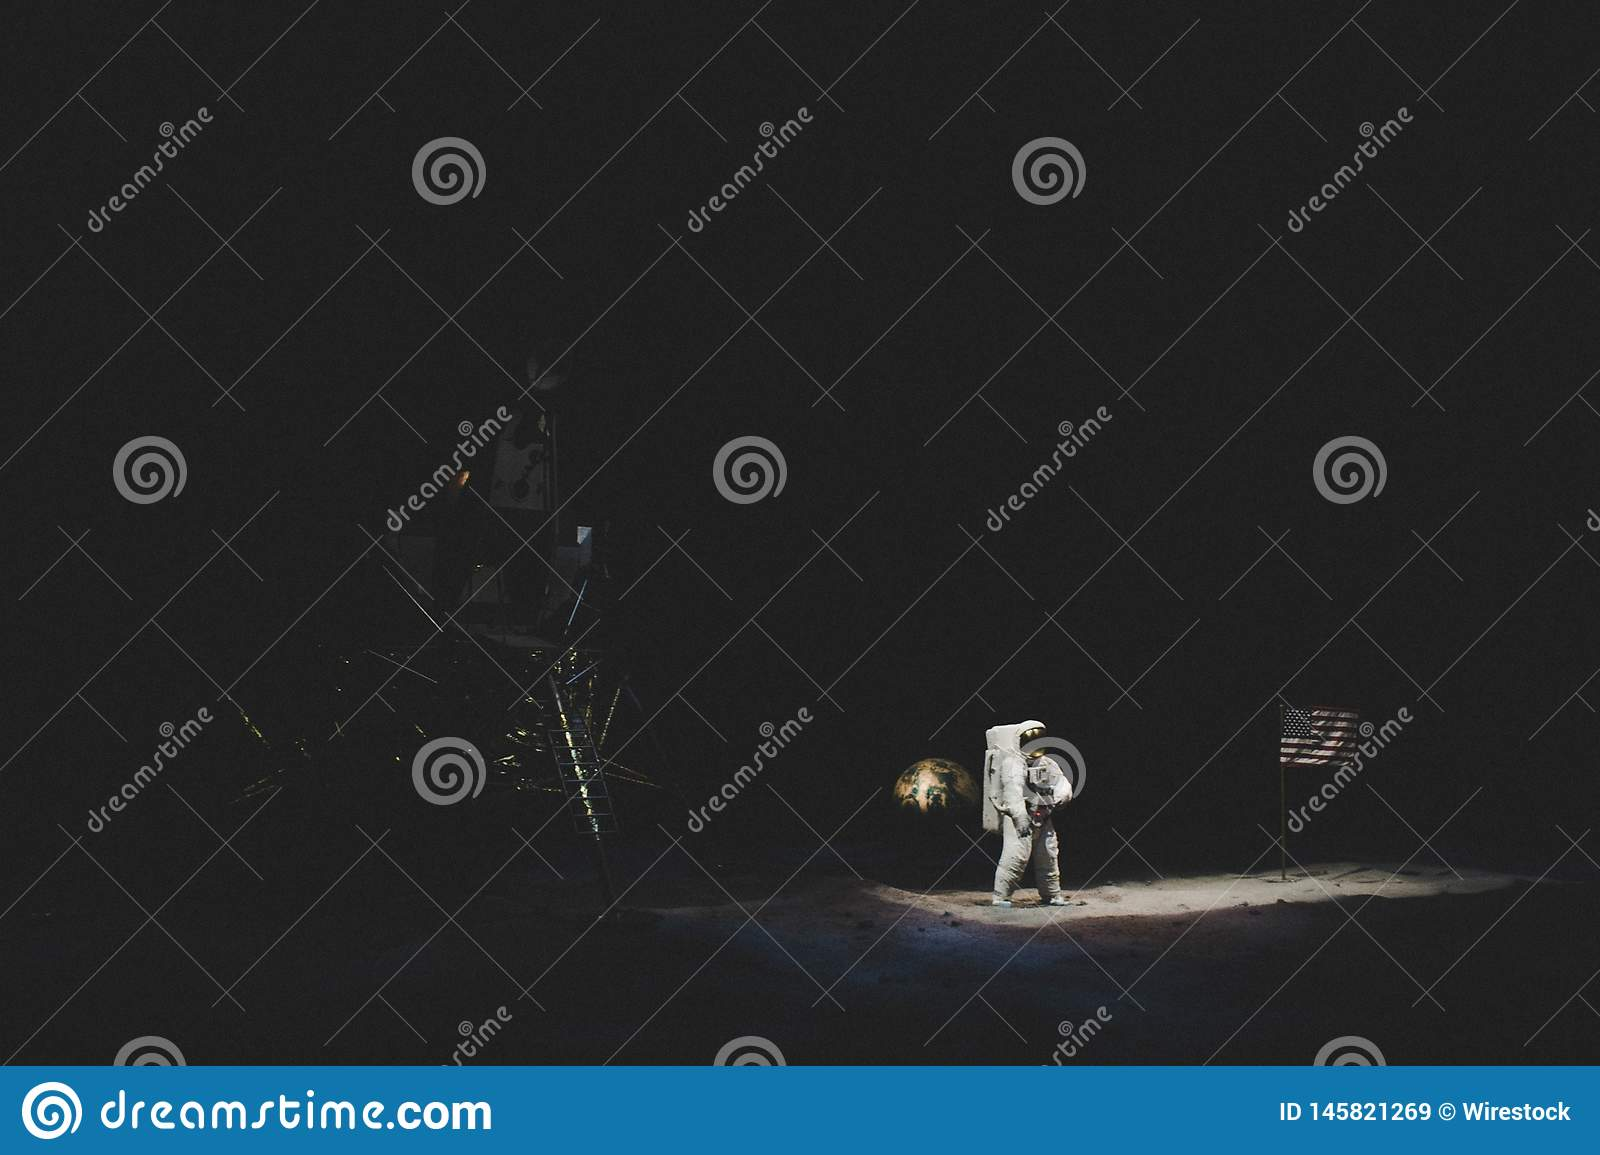 A recreation of the moon landing at NASA museum